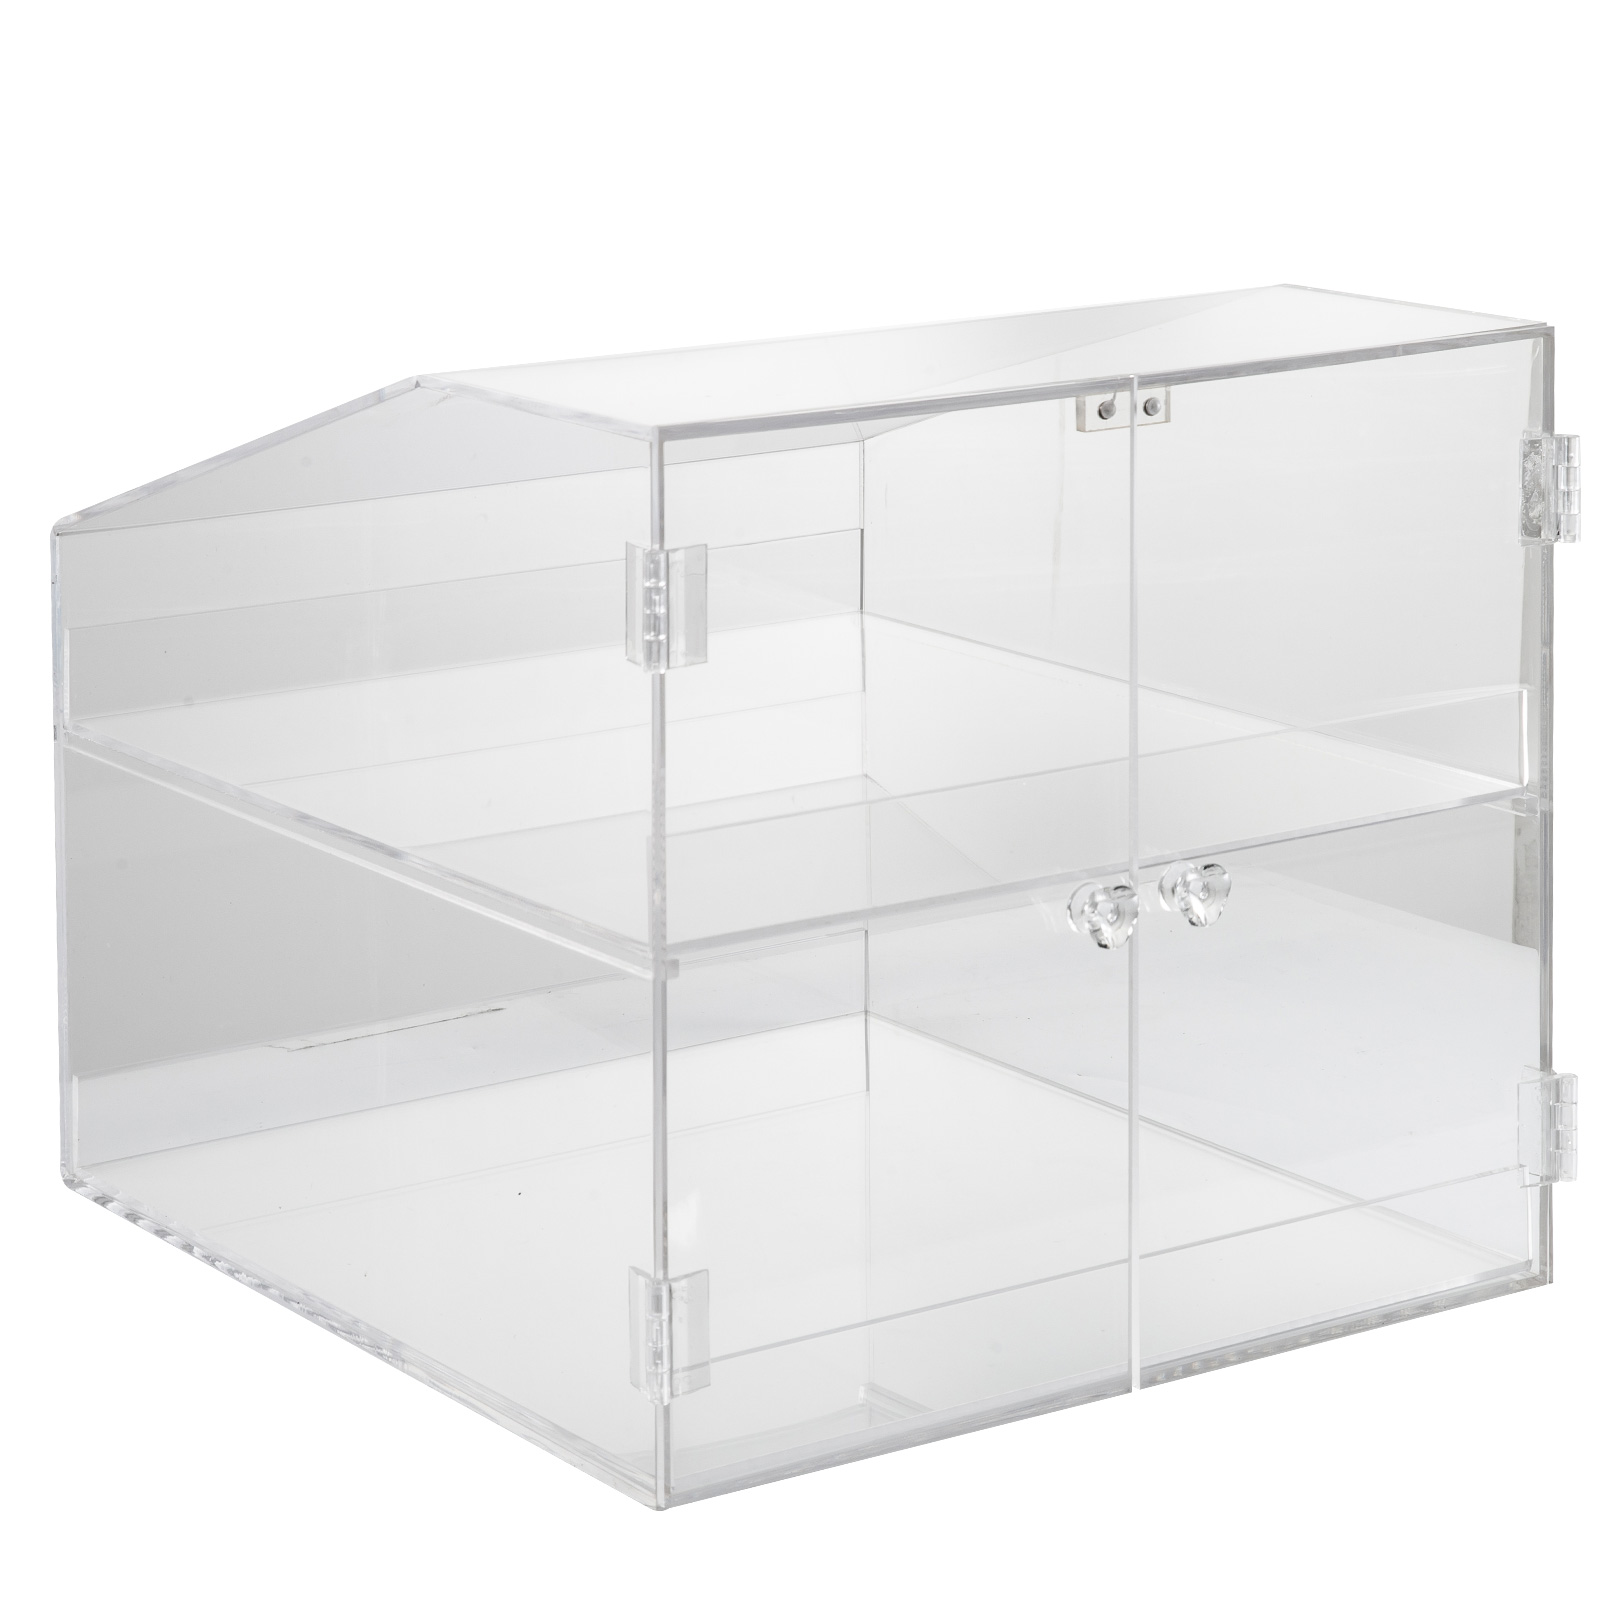 thumbnail 57 - 2-3-4-Shelves-Acrylic-Display-Cabinet-Glued-Unassembled-Bakery-Clear-Pastry